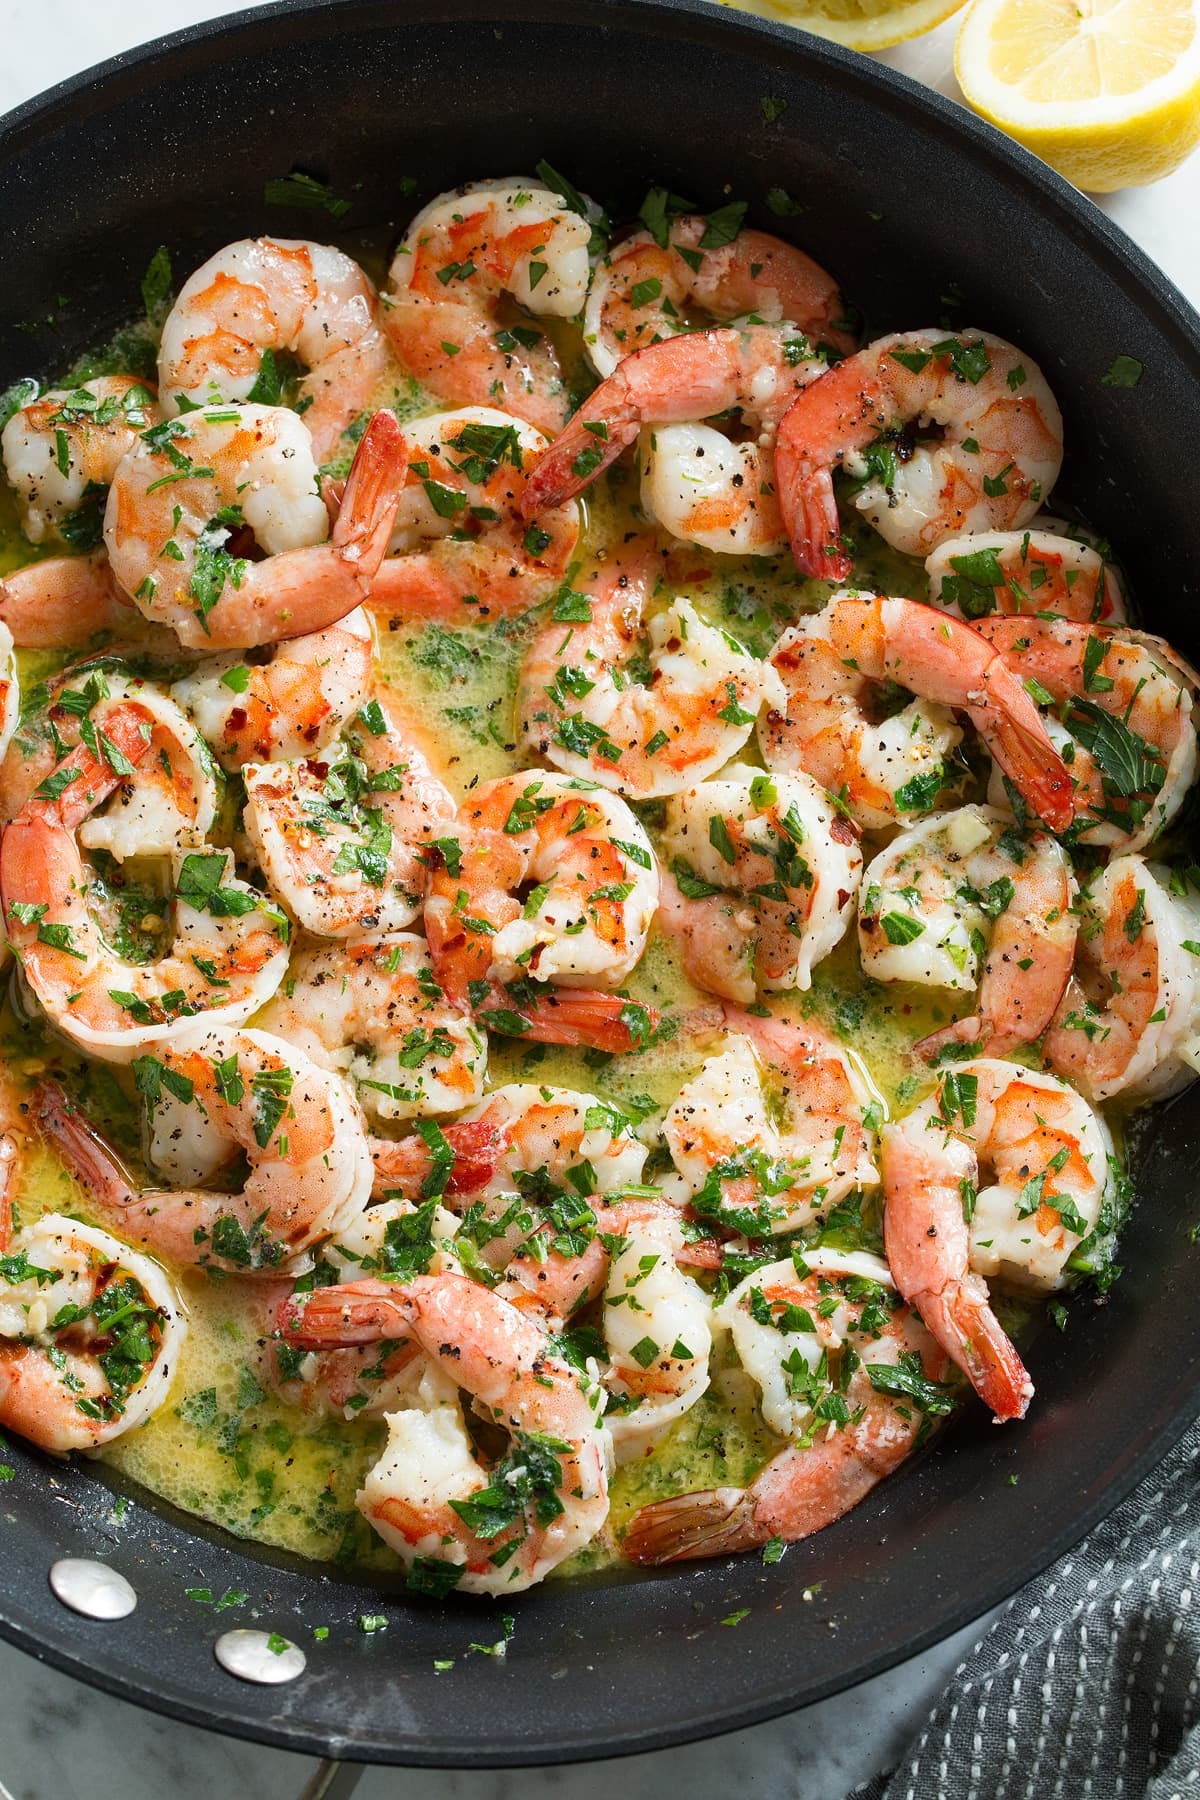 Overhead close up image of shrimp scampi in a skillet after cooking.